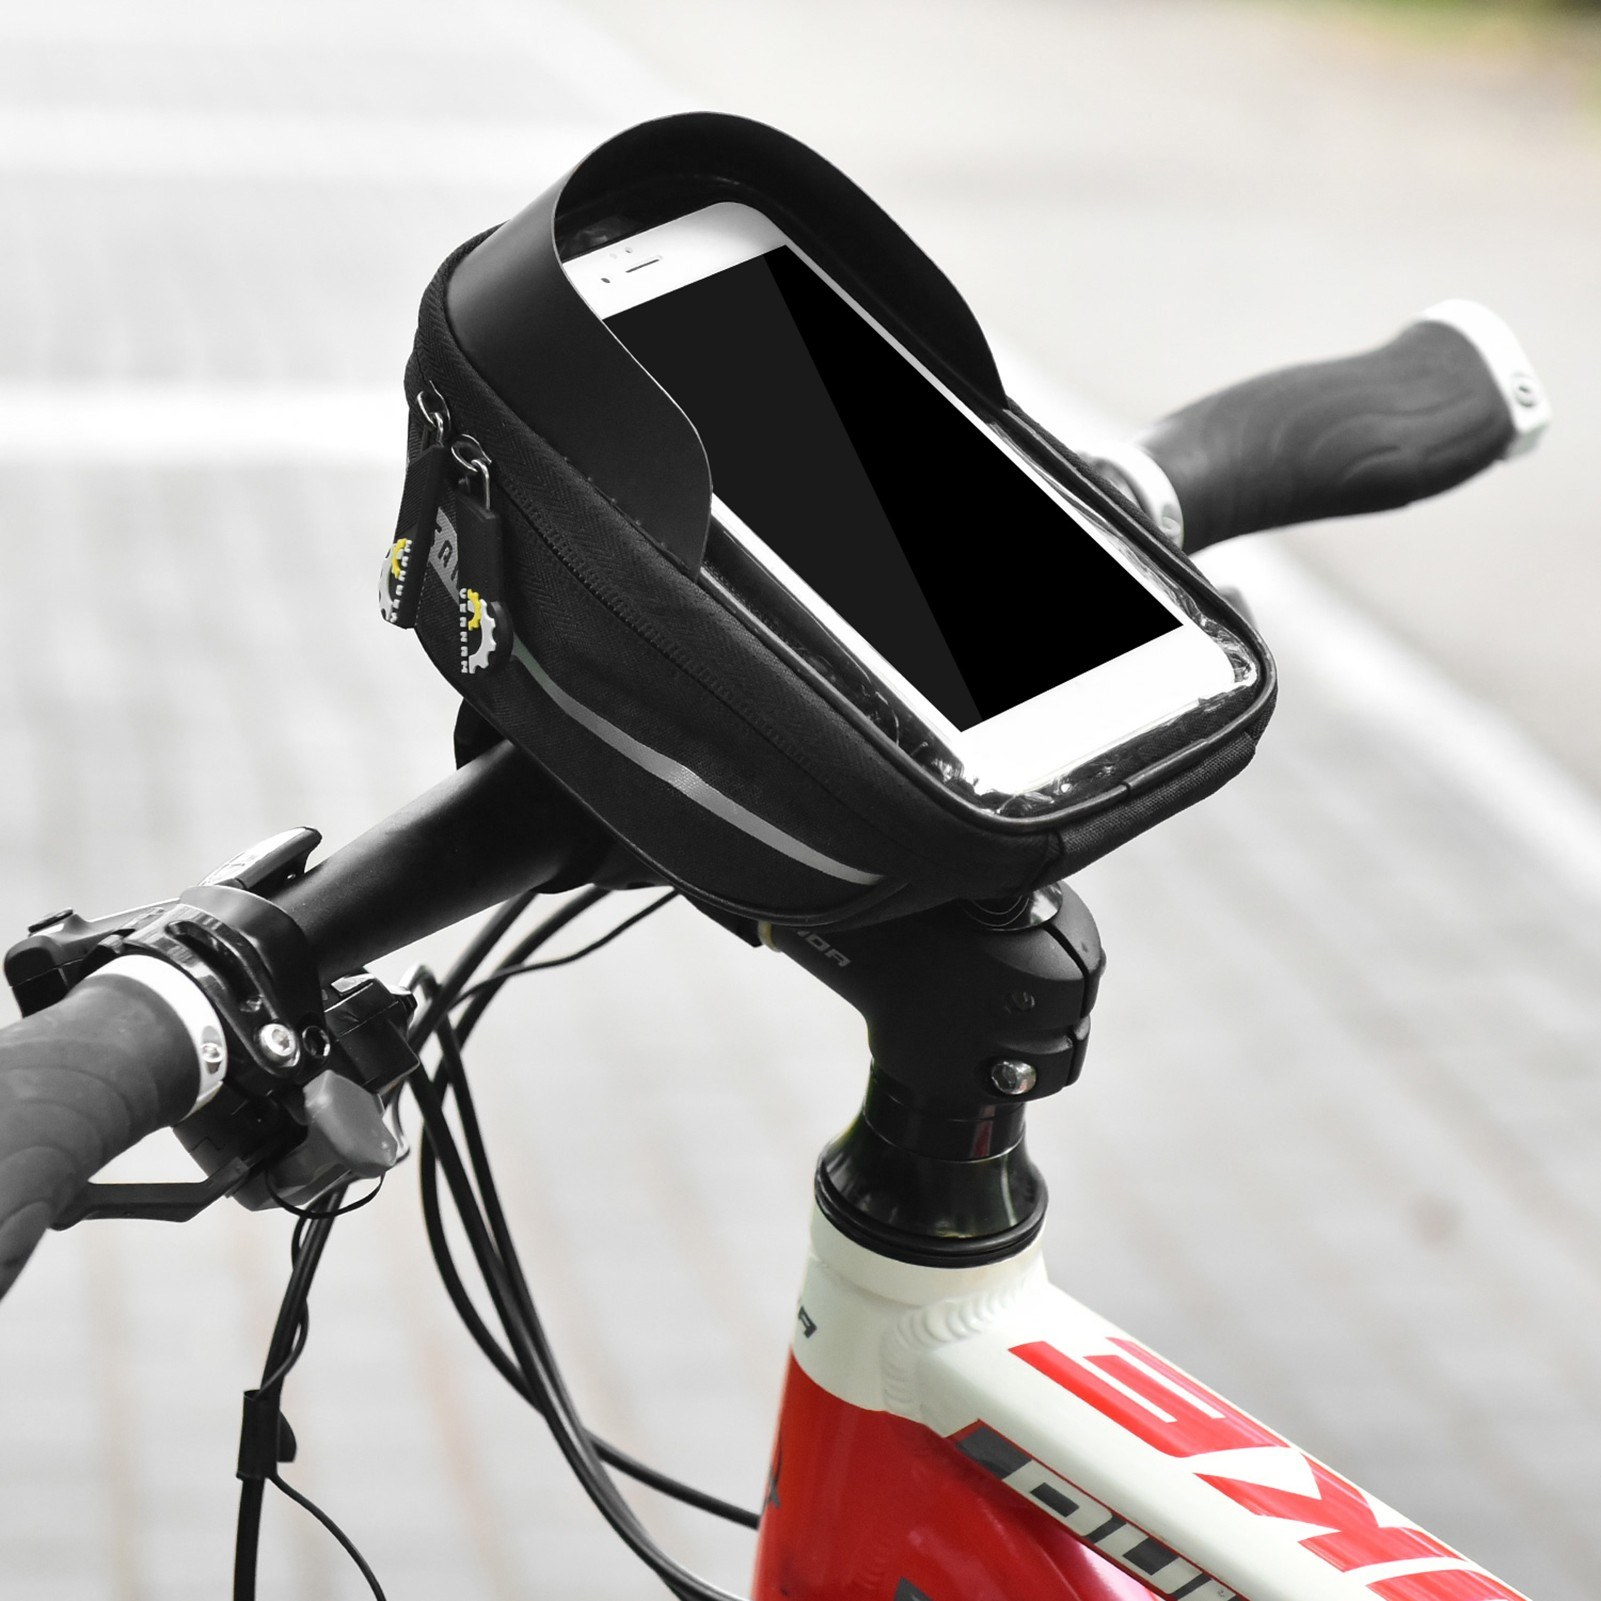 Bicycle Phone Mount Bags Waterproof Front Frame Top Tube Bag With Touch Screen Phone Holder Case Cycling Bike Phone Tool Storage Bag Pack